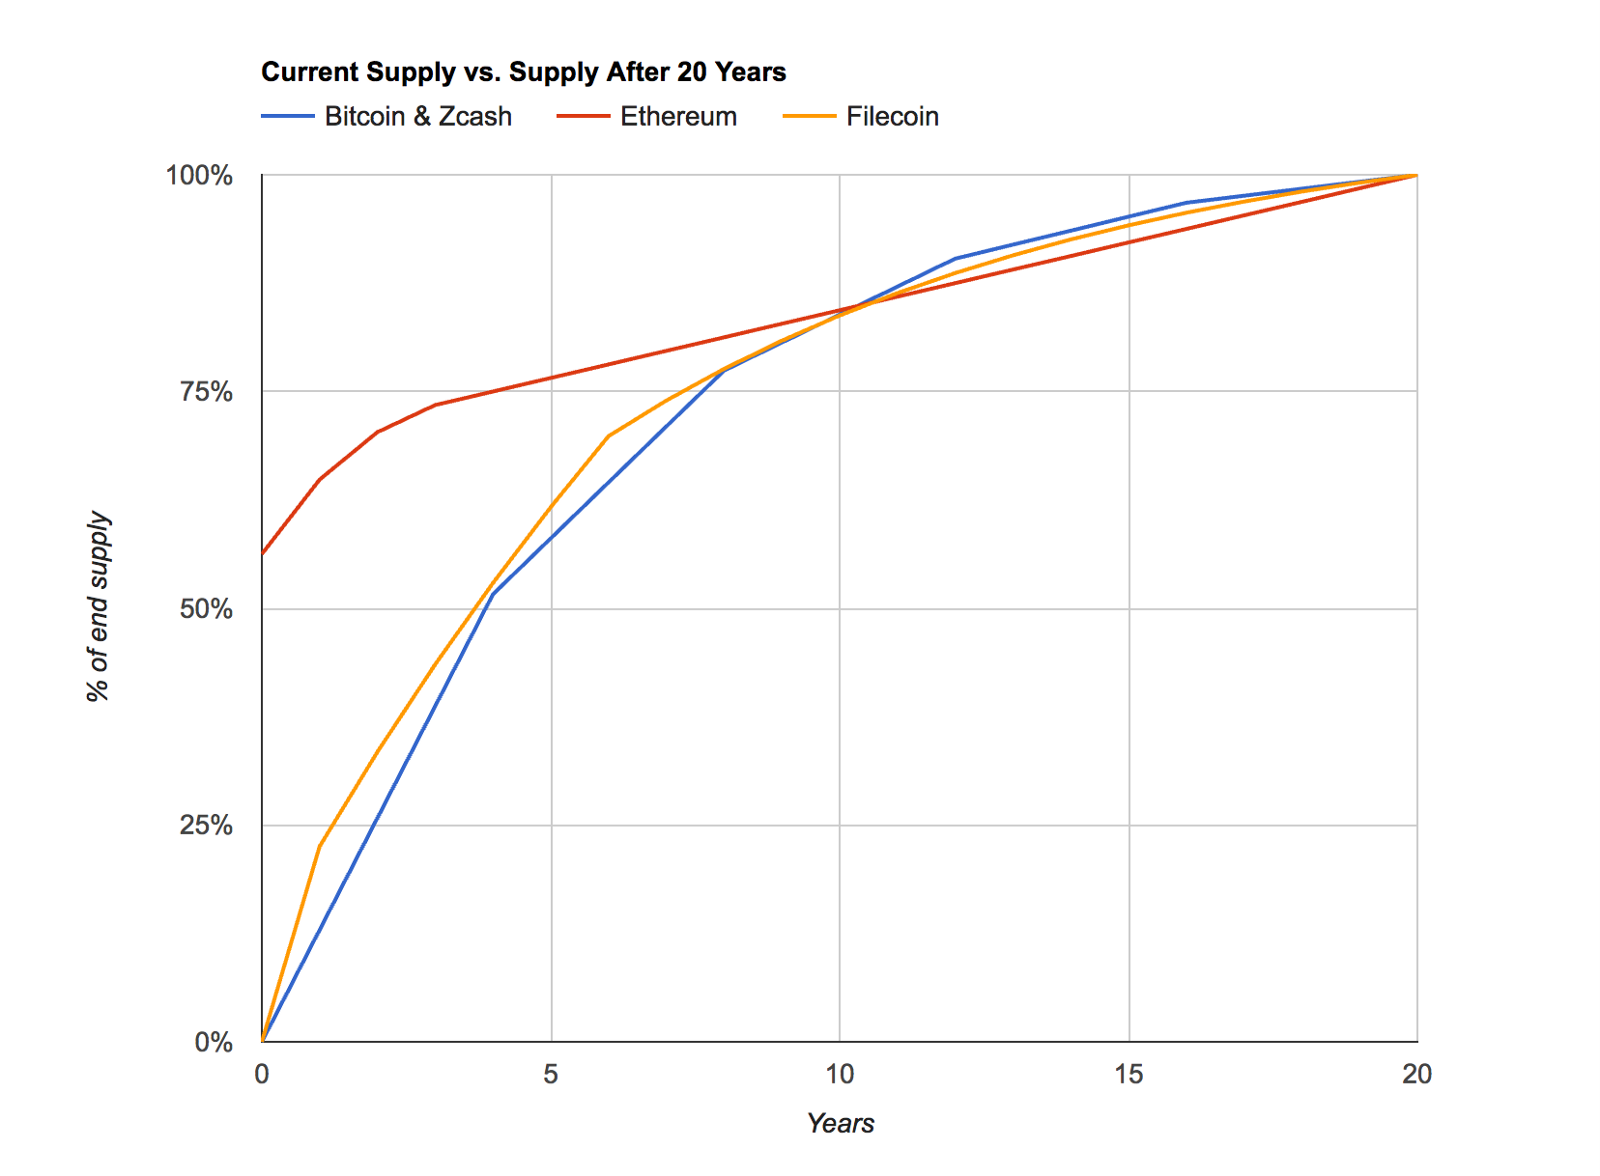 Note That The Graph Uses Yearly Sampling So Some Of Smoothness Filecoin Curve Could Not Be Adequately Captured